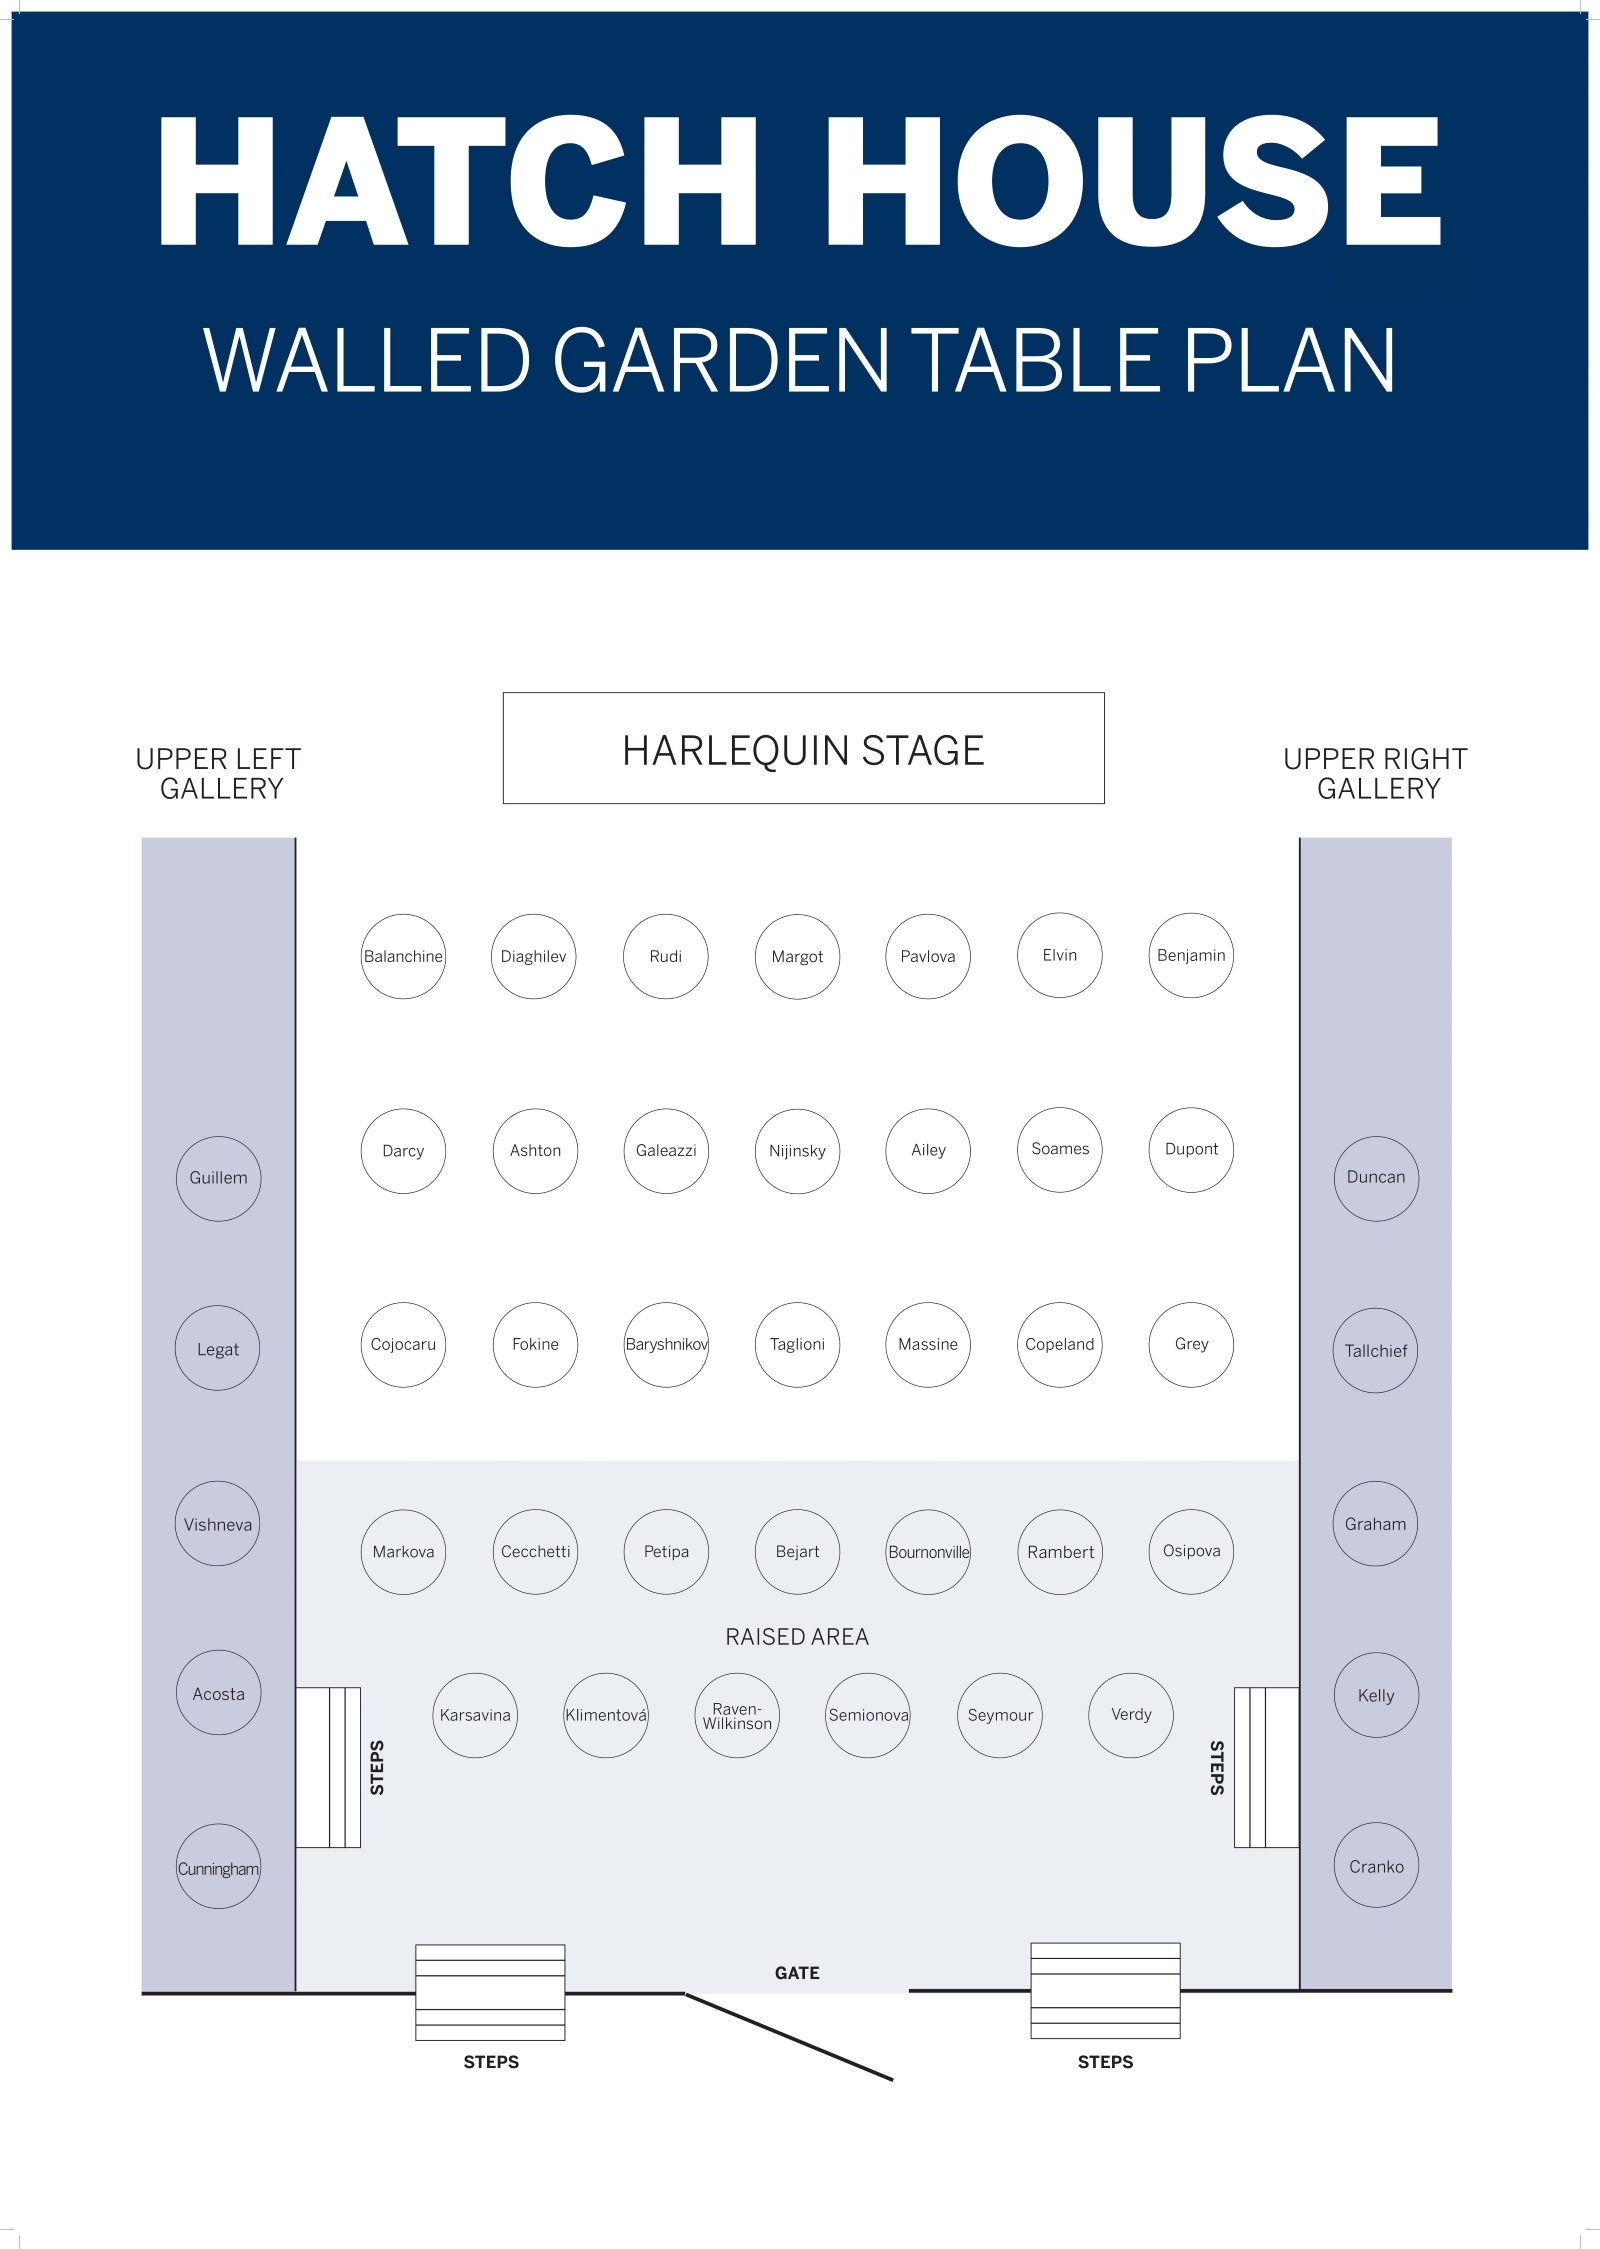 Hatch House Garden Table Plan